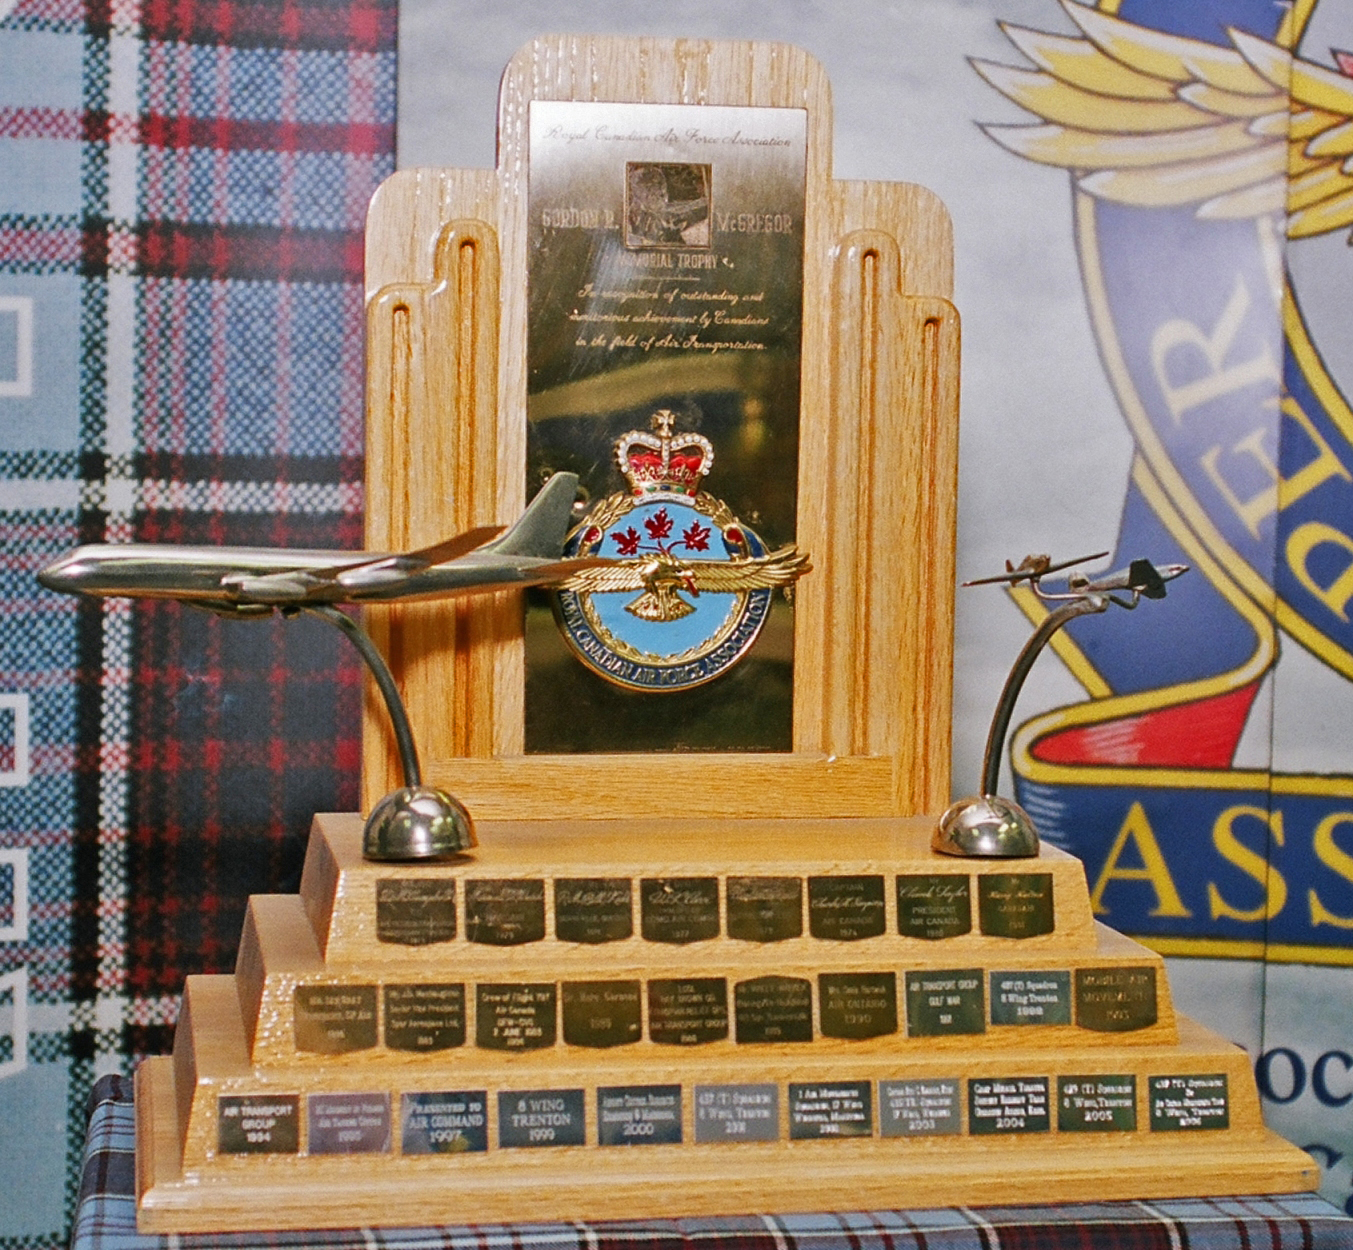 The 2016 Gordon R. McGregor Memorial Trophy was presented to the Calgary Airport Authority in recognition of outstanding and meritorious achievements in the field of air transportation. PHOTO: RCAFA